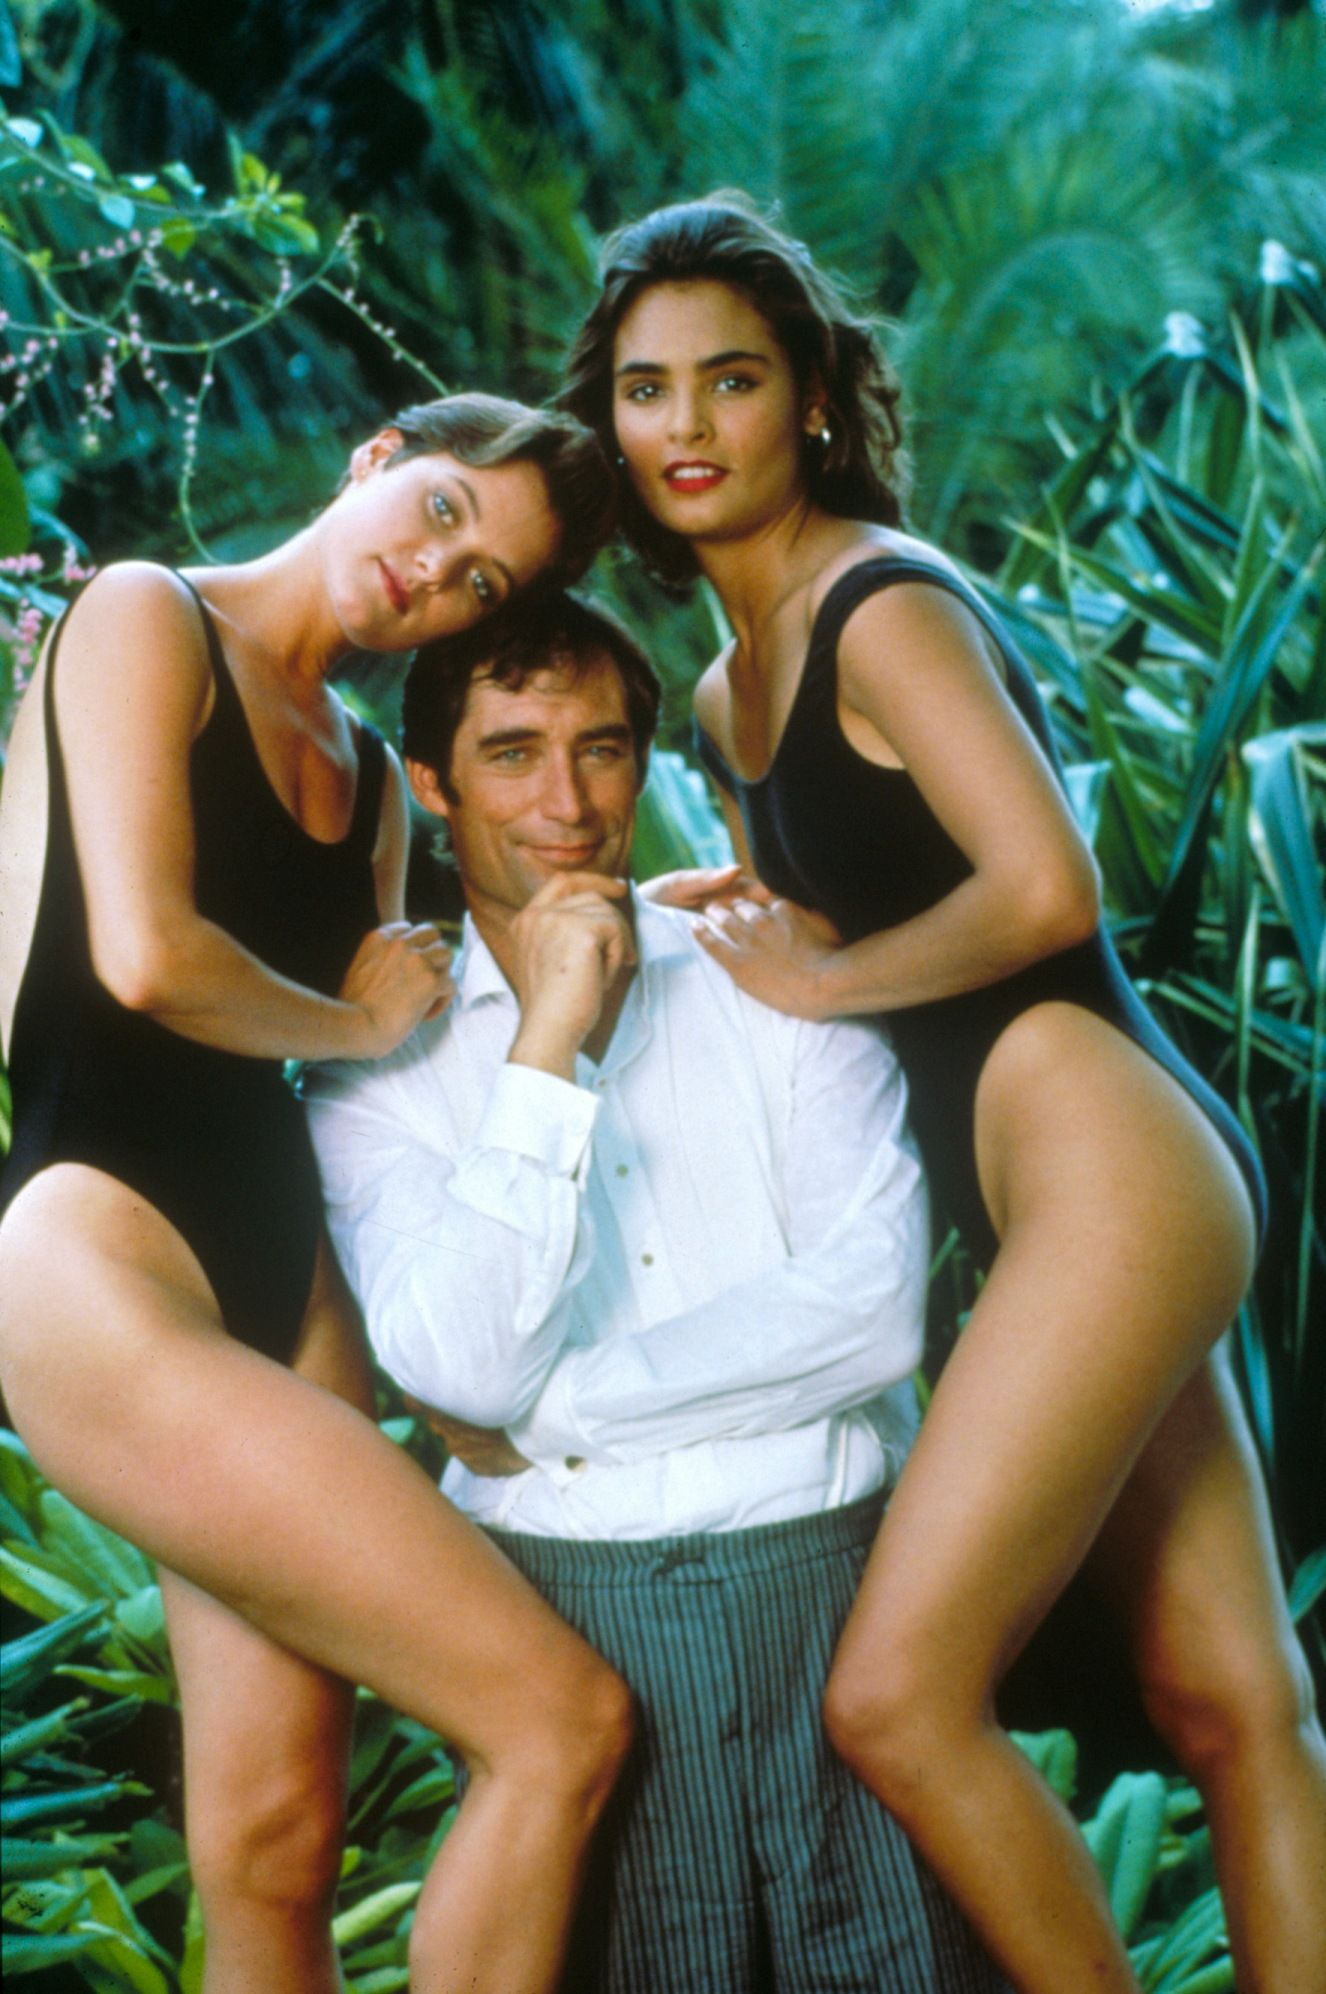 The Cast Of Licence To Kill Pose For The Press 1989 L To R Carey Lowell Timothy Dalton Talisa Soto